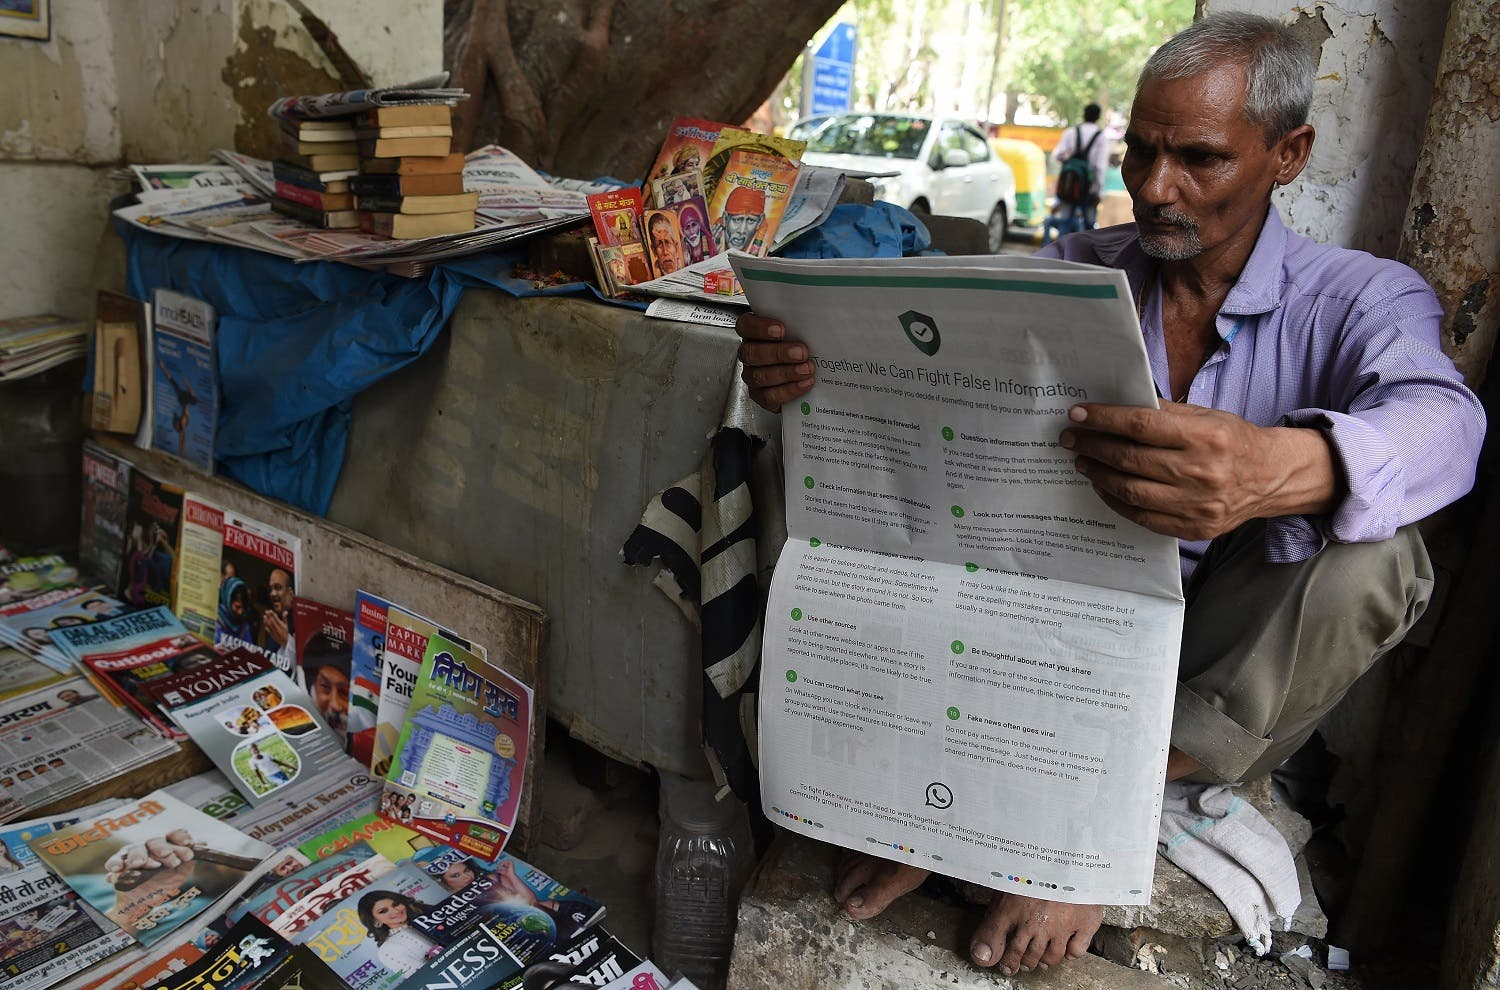 A vendor reading a newspaper with a full back page advertisement from WhatsApp intended to counter fake information in New Delhi on July 10, 2018. (AFP)